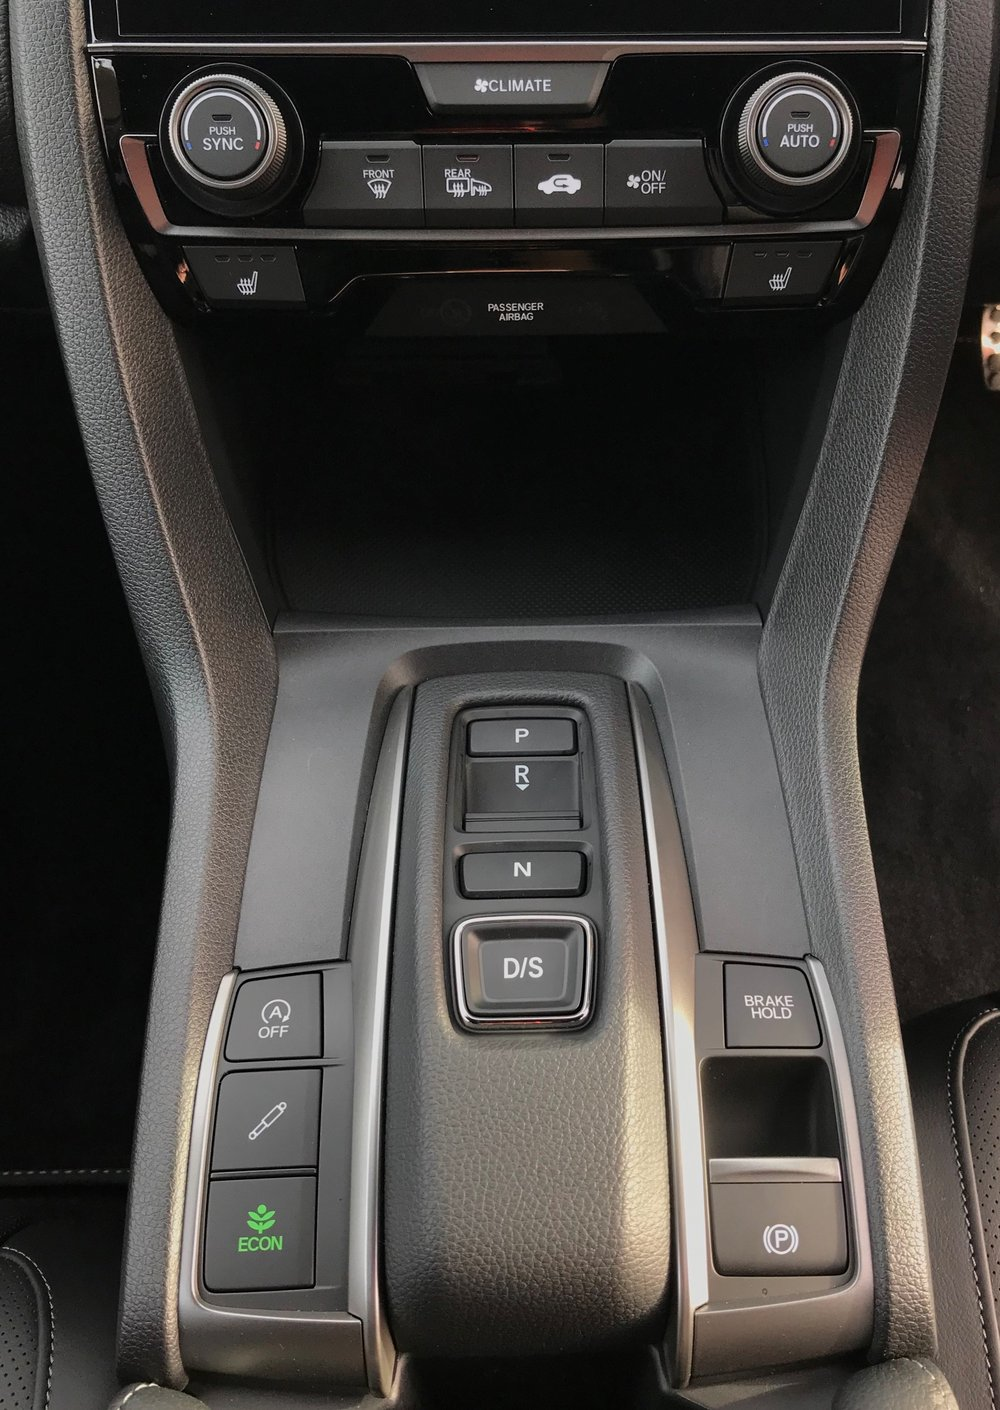 153152_Civic_diesel_interior_automatic_transmission.jpg